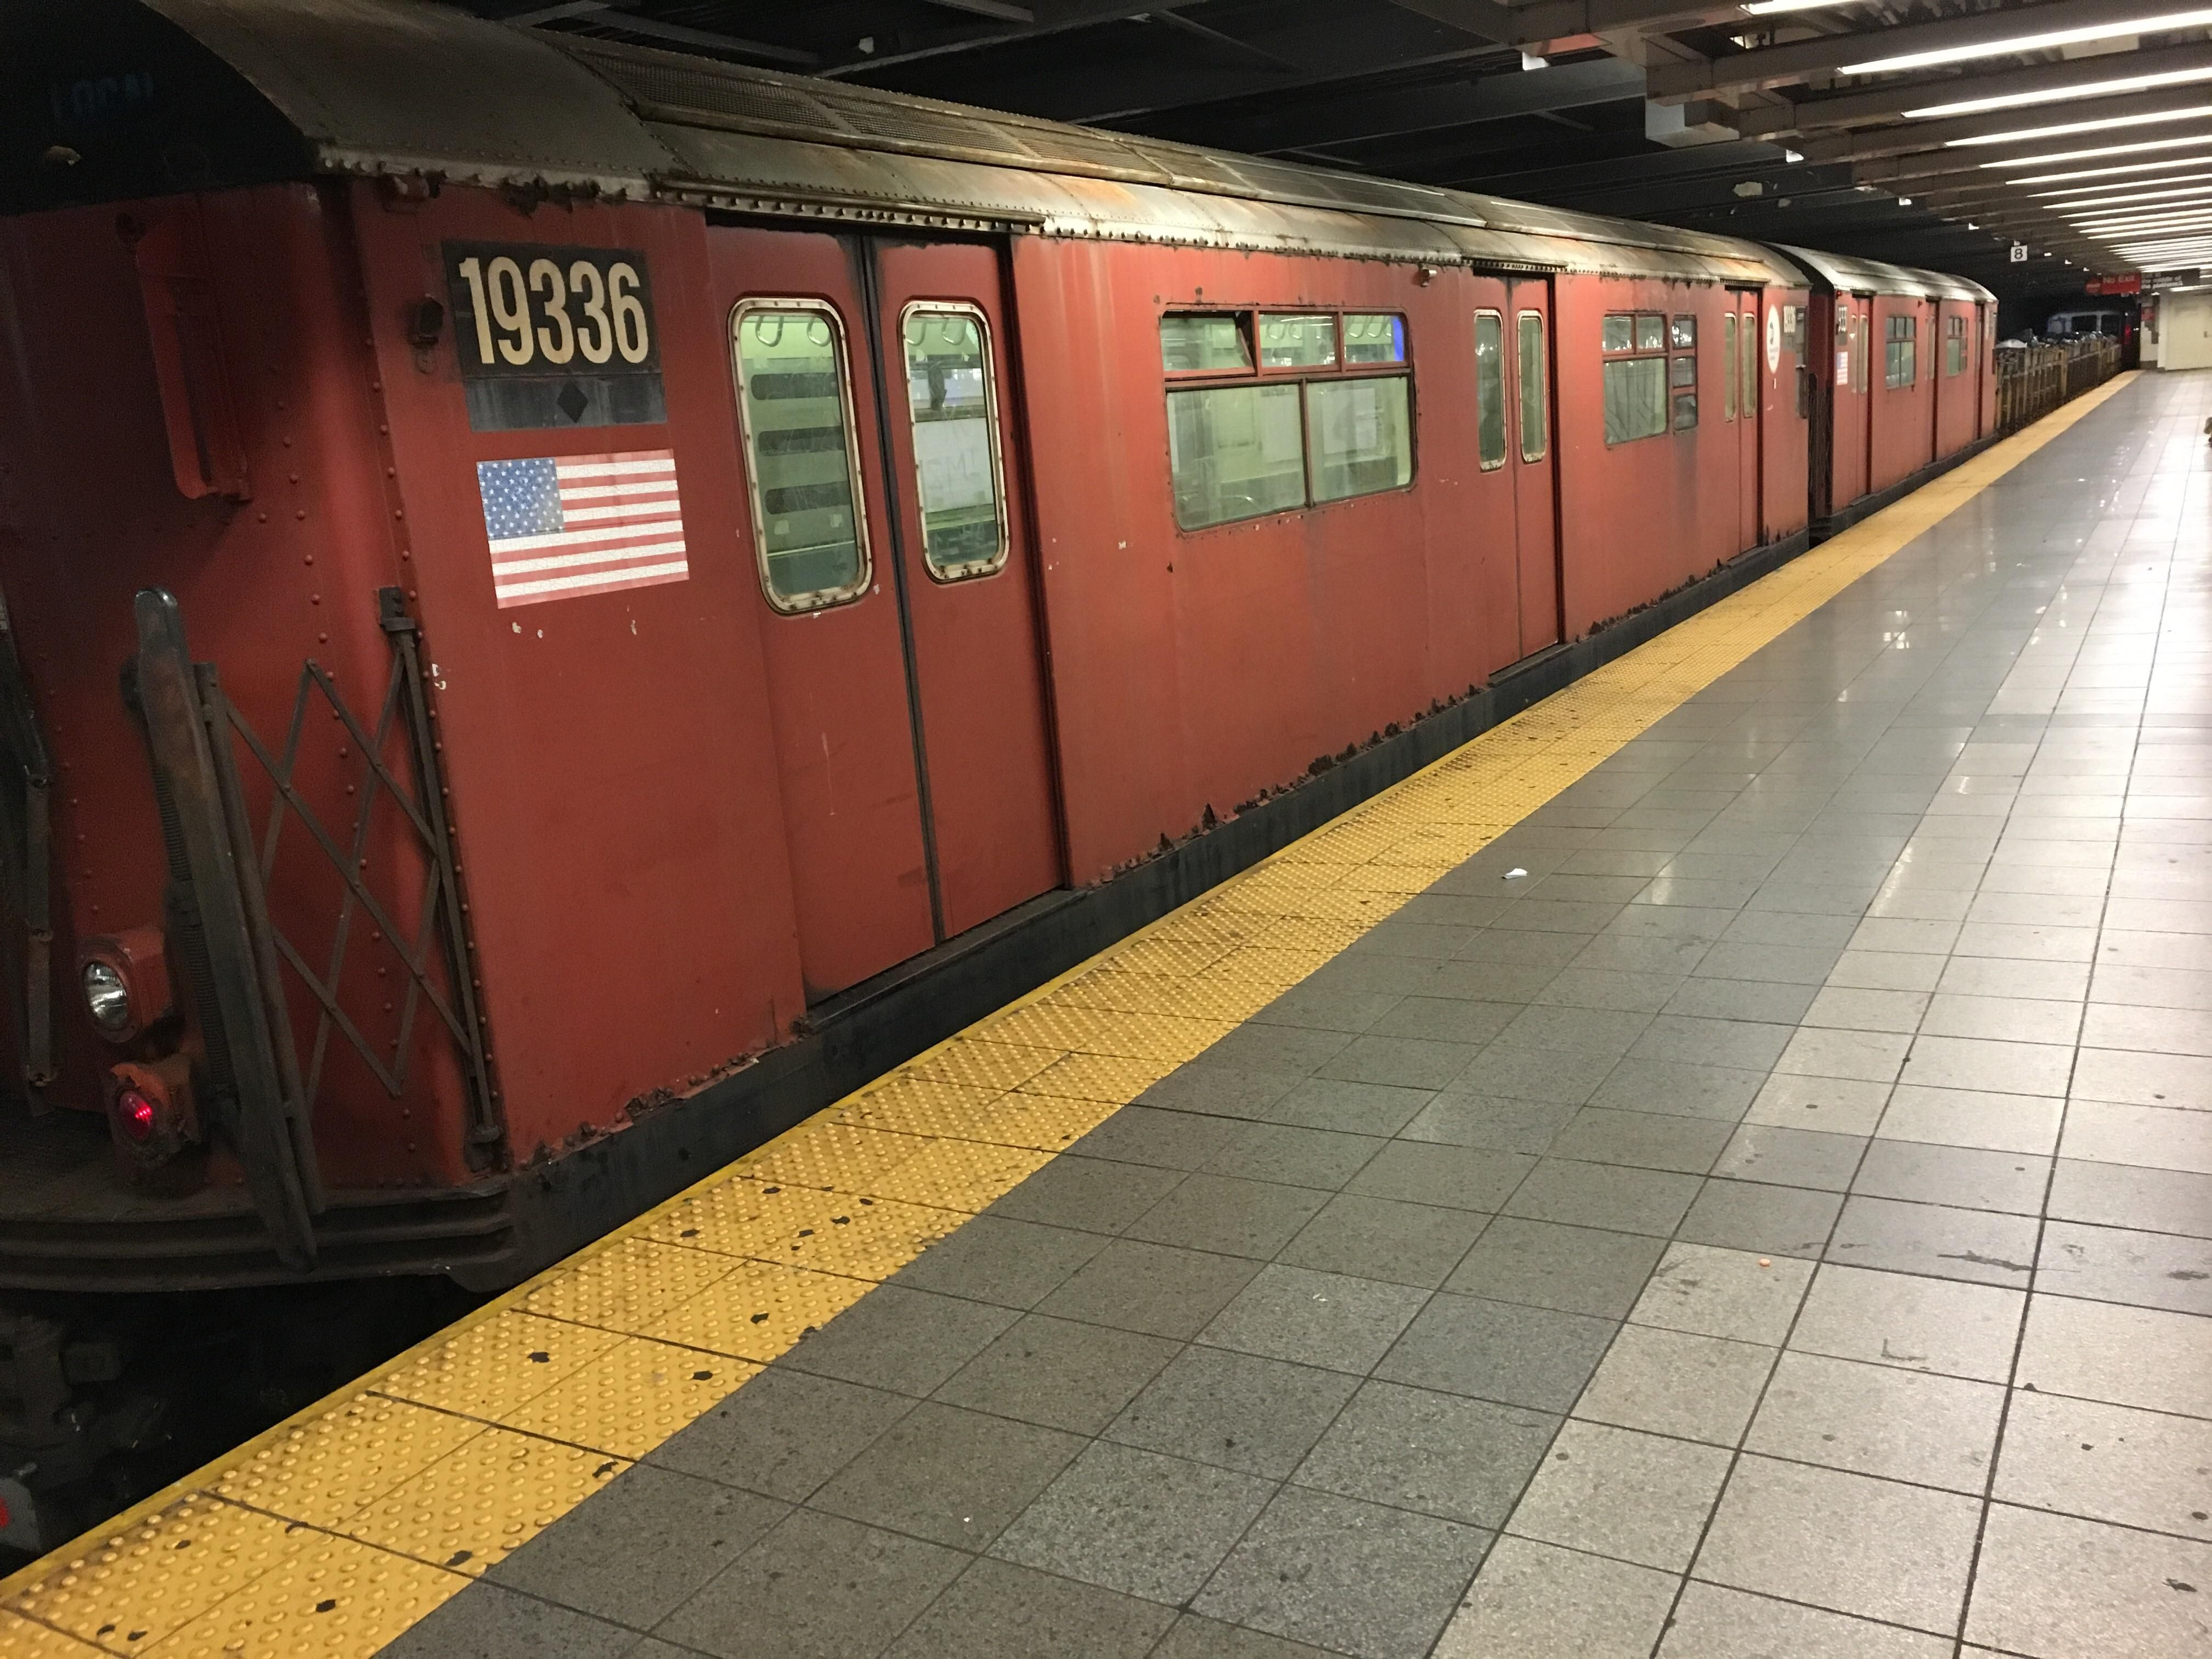 Mta Nyc Subway Car Hese Cars Were Painted A Deep Red To Combat Graffiti Which Had Become A Major Problem In The Late 1970s And E Nyc Subway Nyc Subway Train